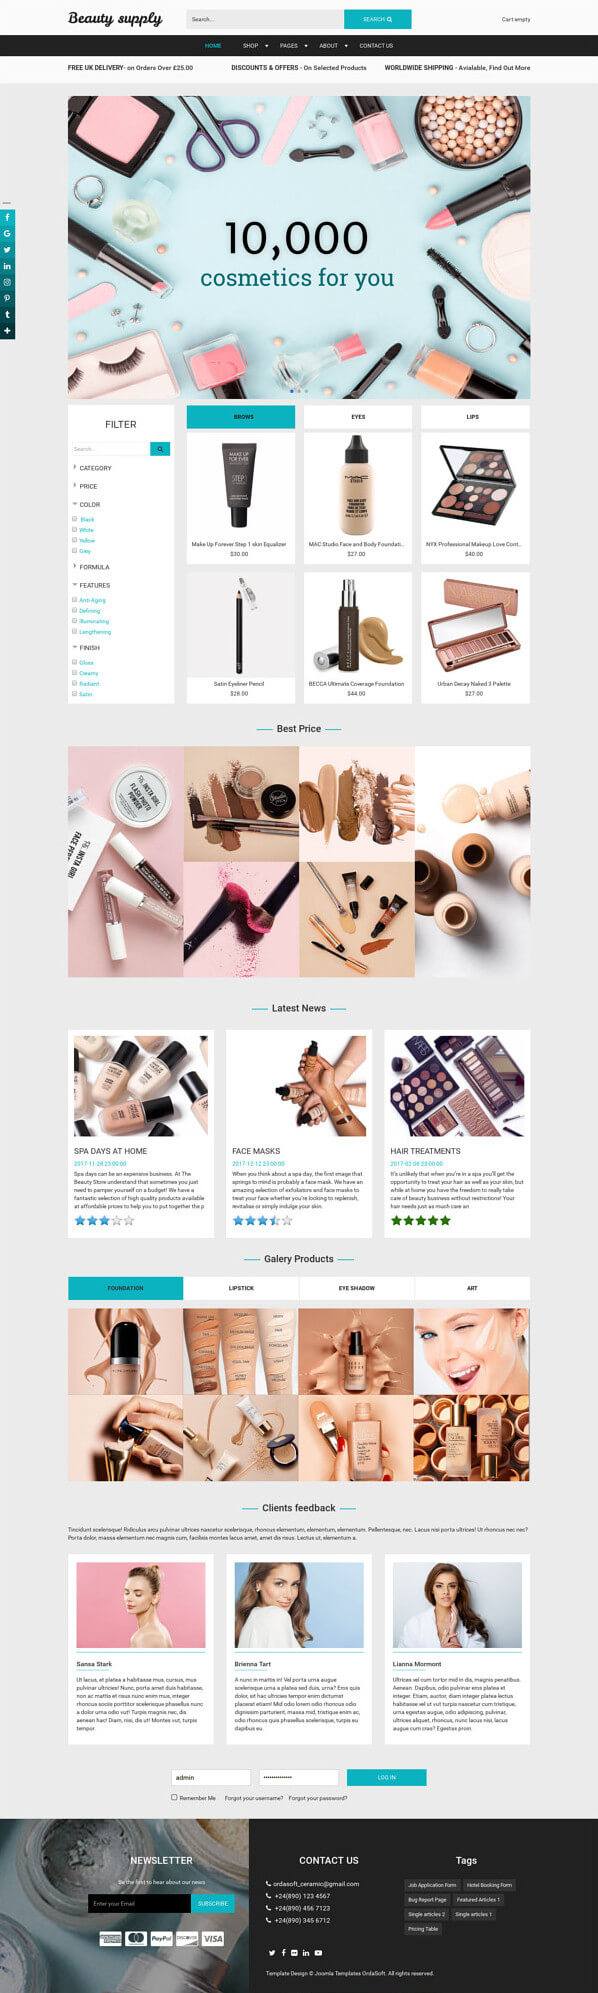 Beauty Supply - Joomla eCommerce template, for create online beauty store website